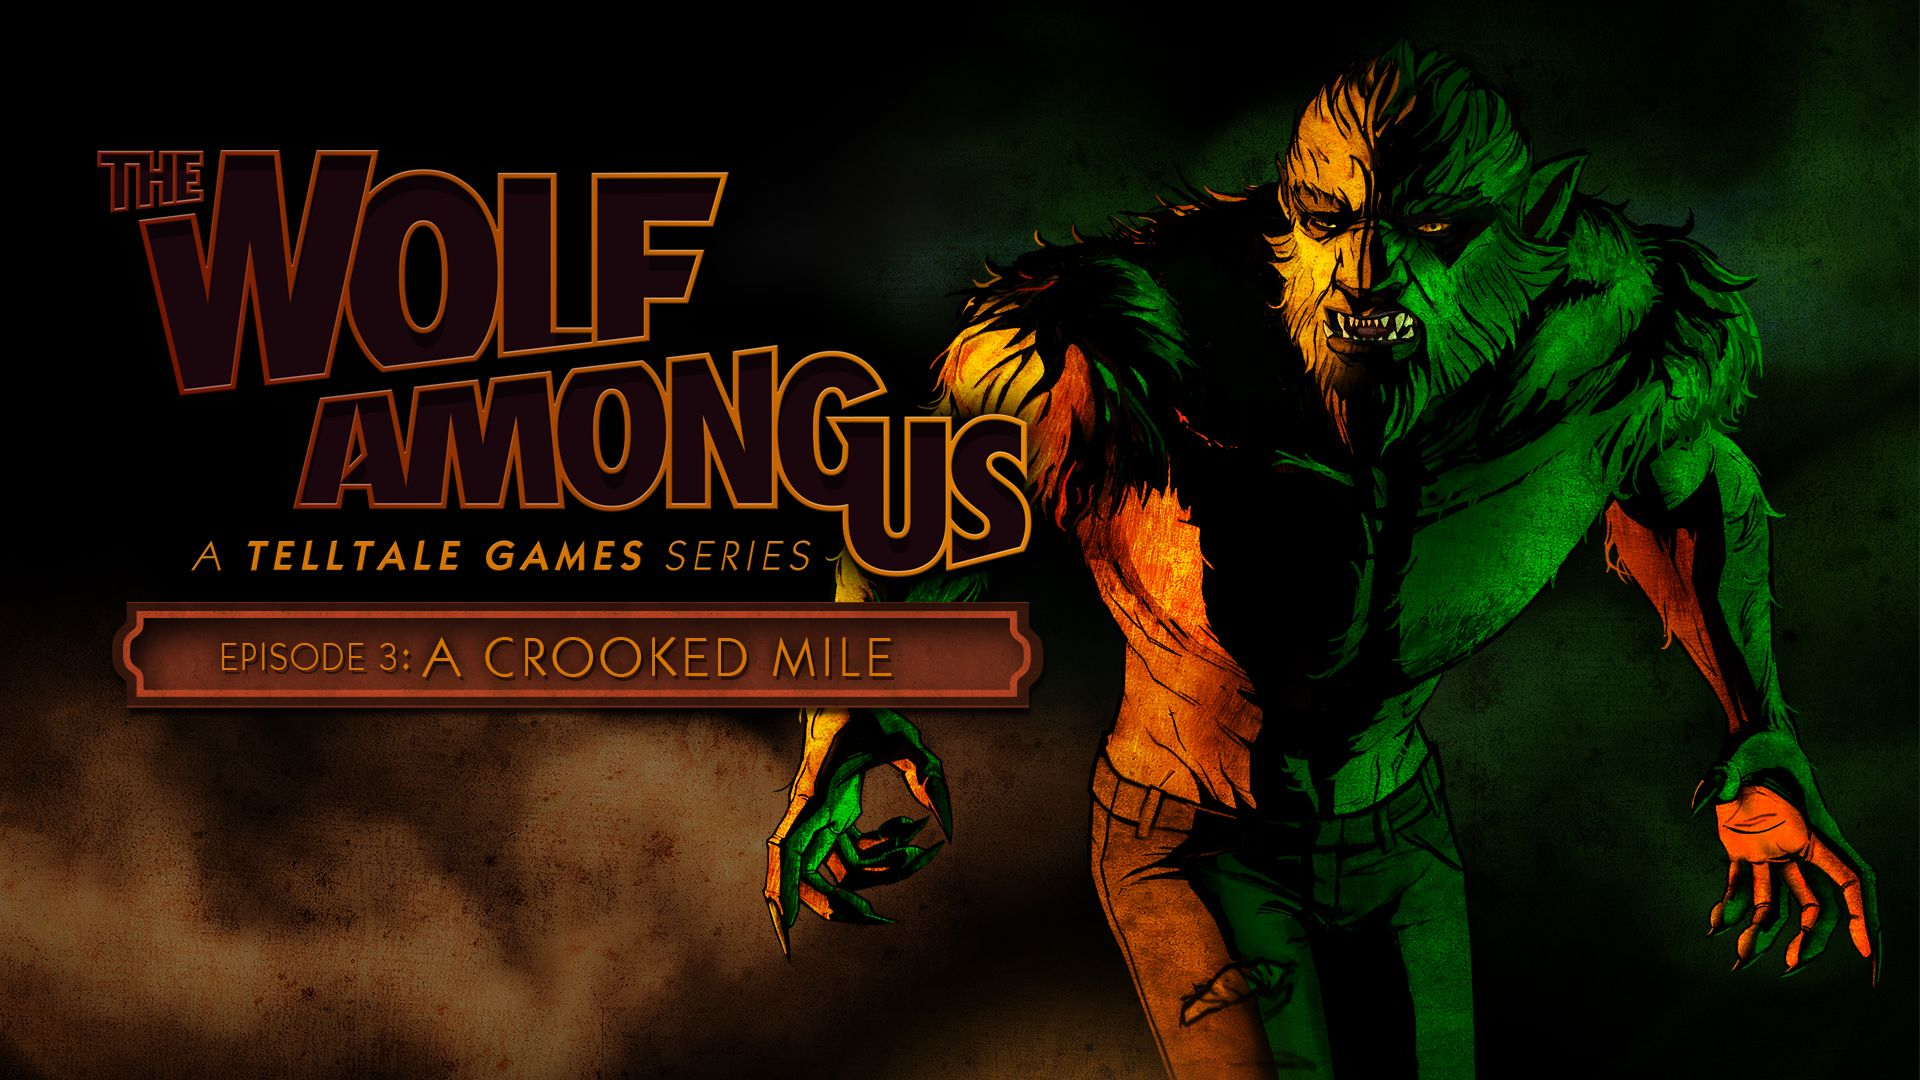 The Wolf Among Us Episode 3 The Crooked Mile Review The Wolf Among Us Crooked Mile Episode 3